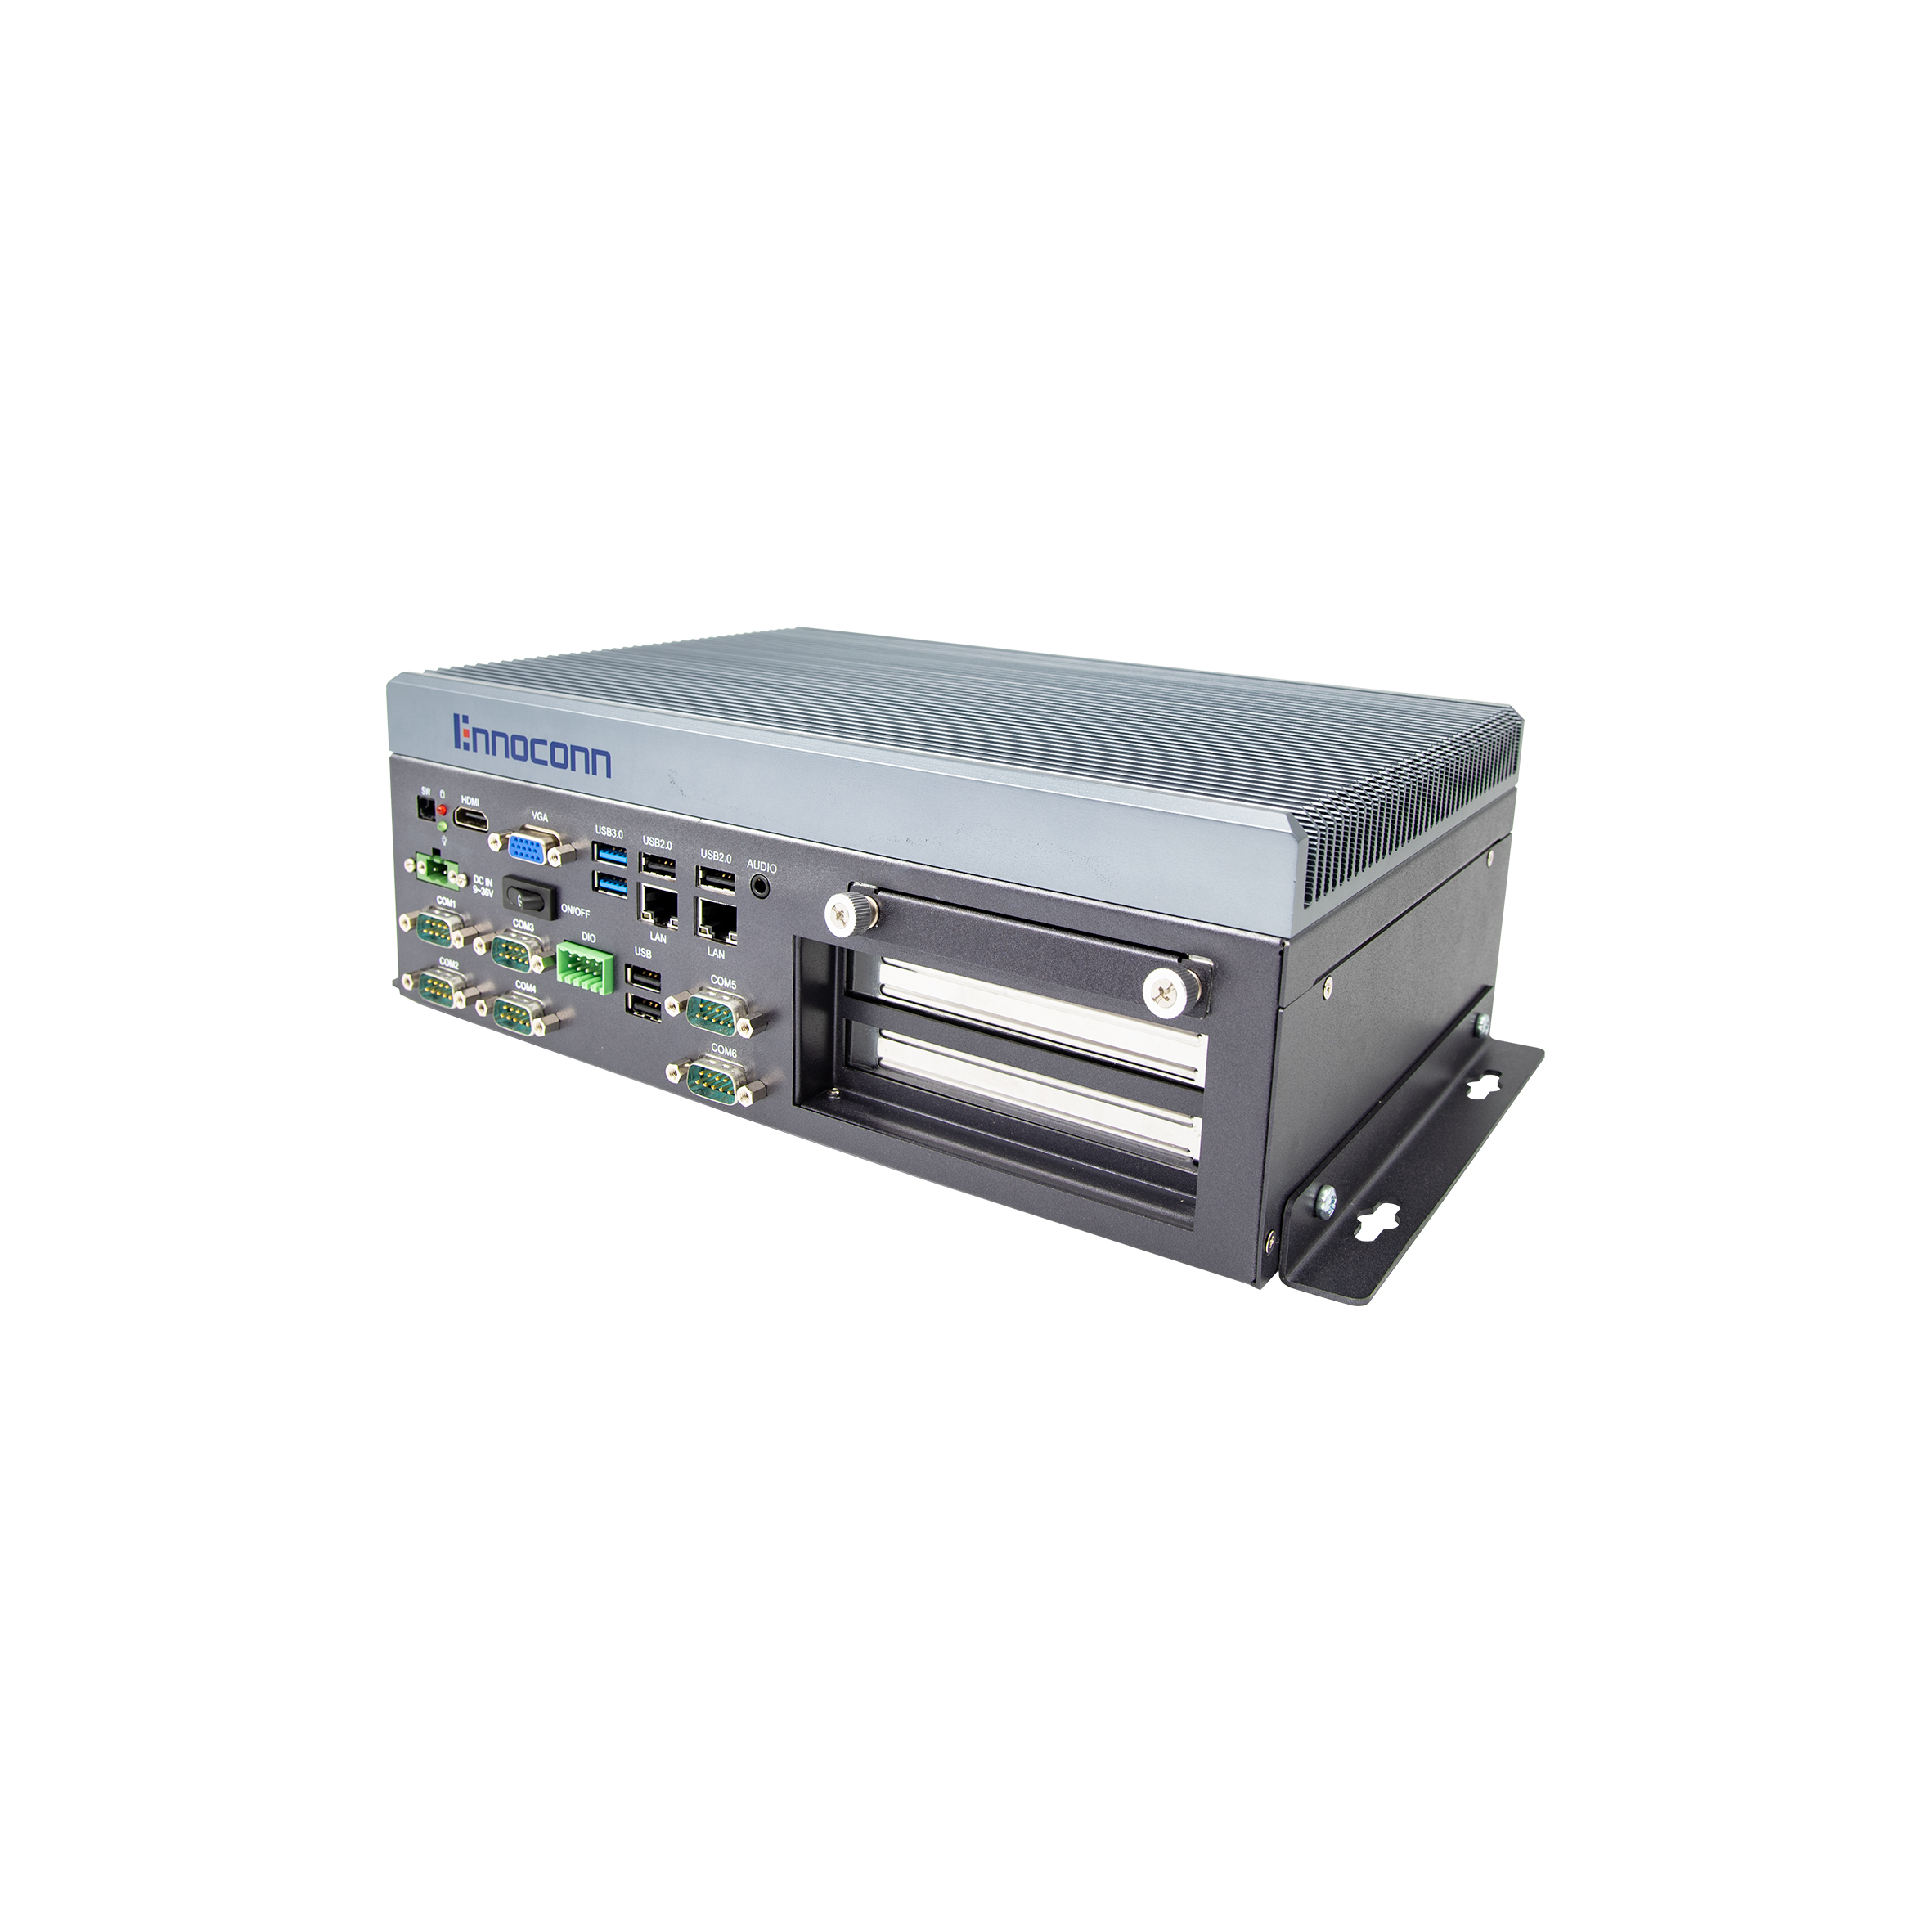 Fanless embedded industrial computer i3-6100u 4g ddr4 256g ssd CES-E610-W26A-8225